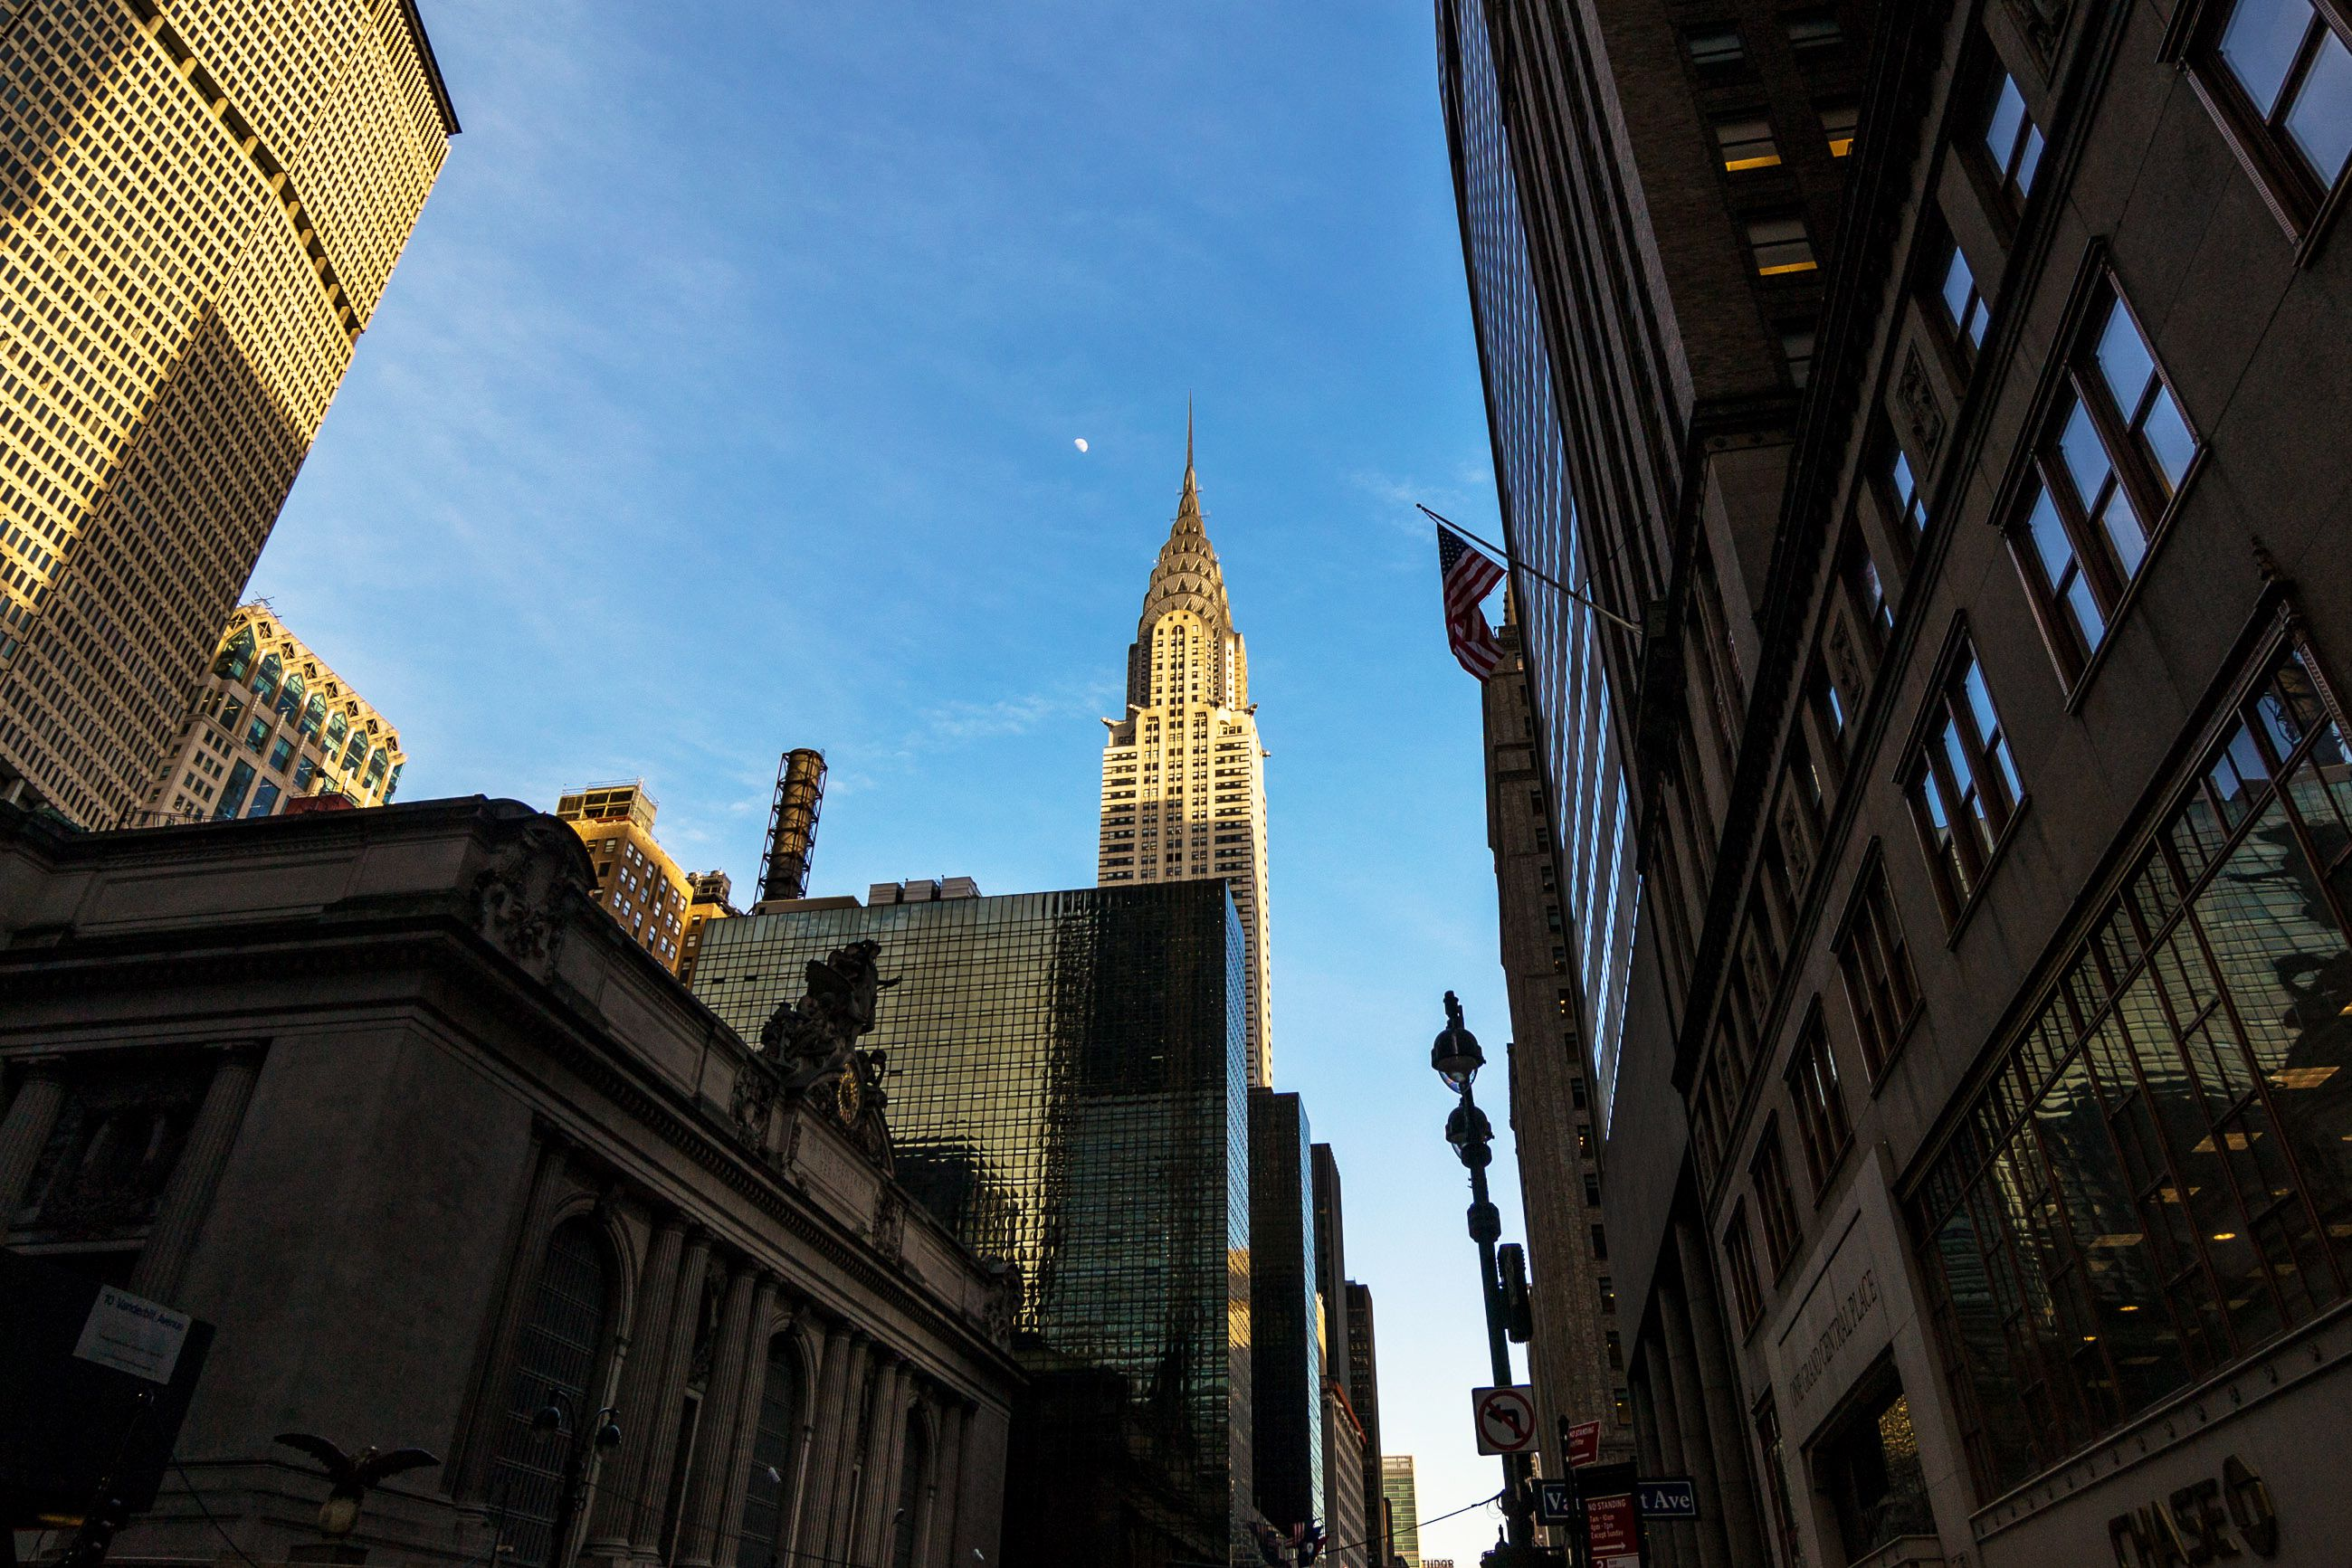 The Chrysler Building photographed from a distance